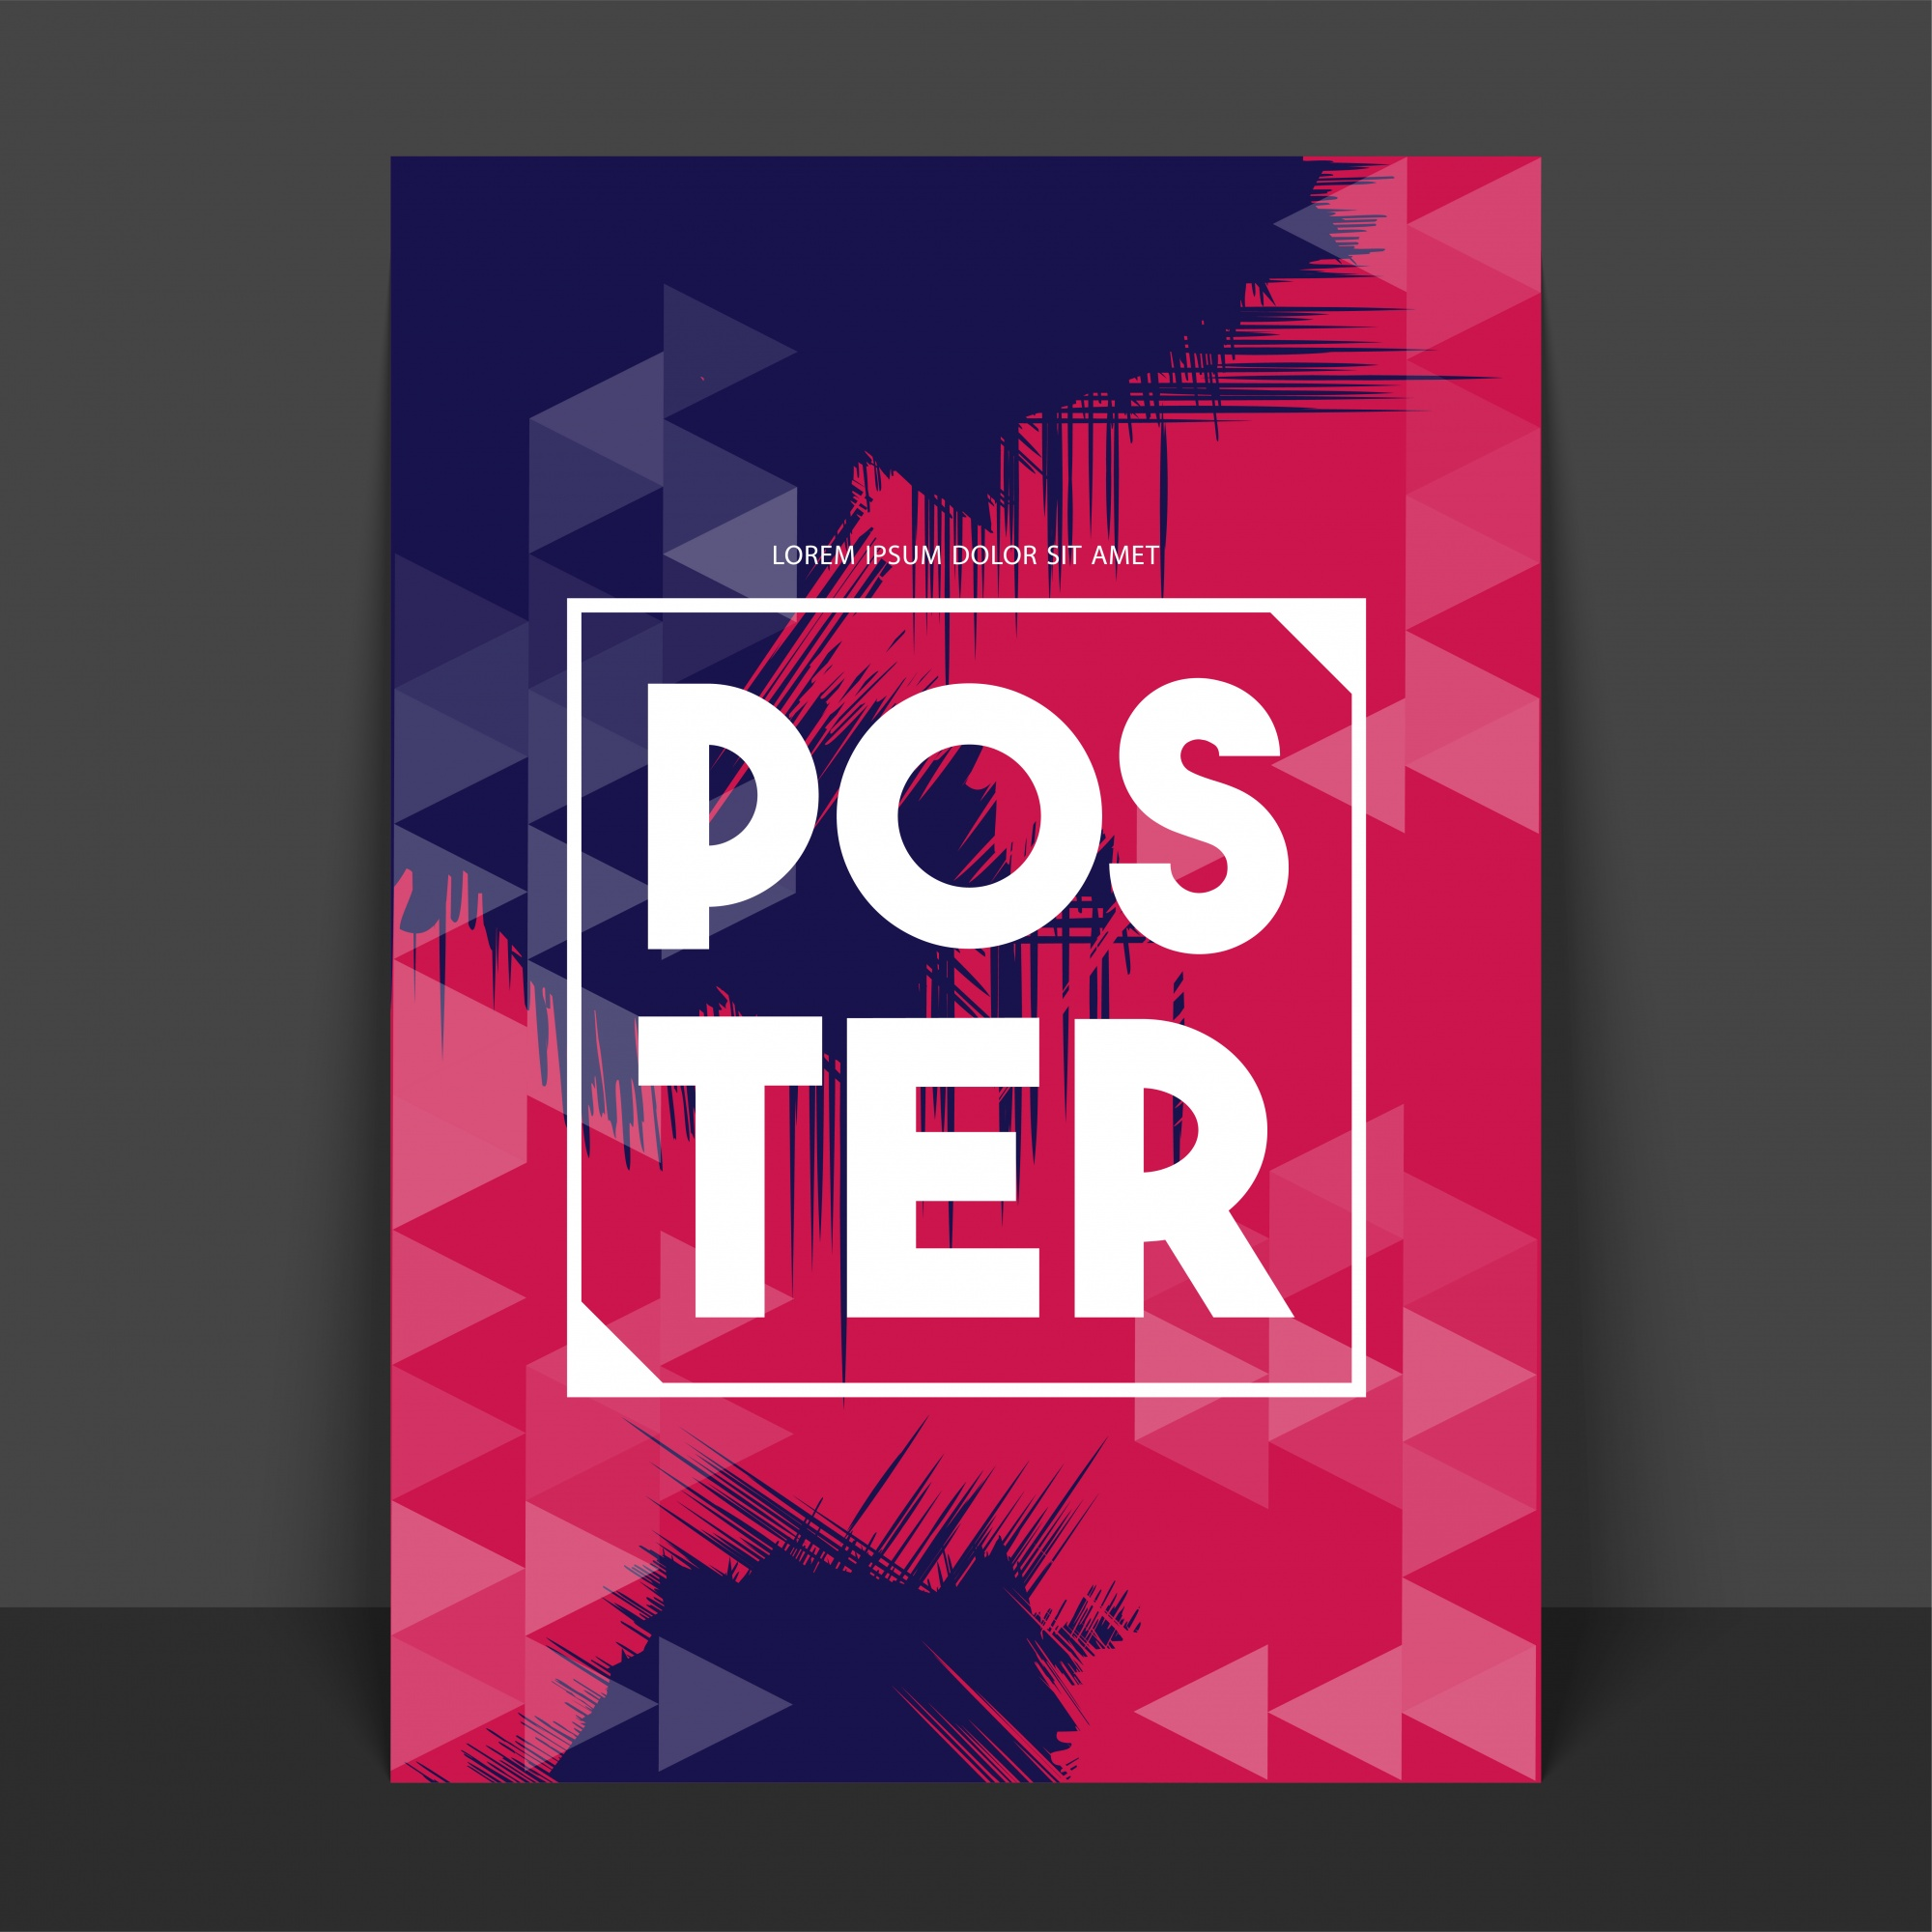 Abstract Poster, Banner or Flyer with geometric triangular pattern in purple and pink colors.